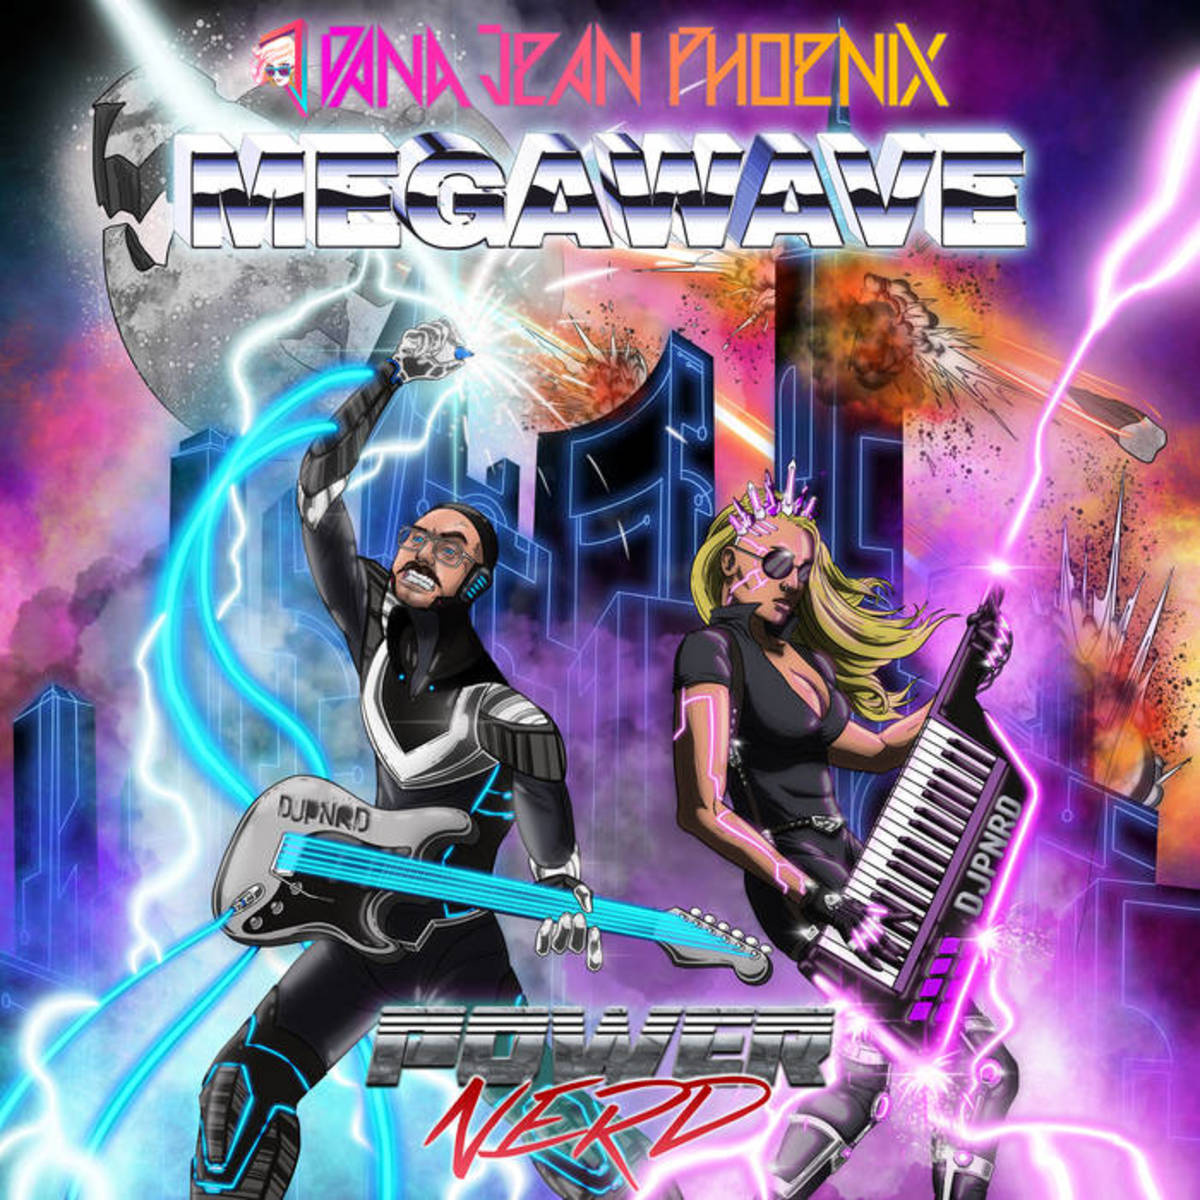 synth-single-review-figure-me-out-by-dana-jean-phoenix-and-powernerd